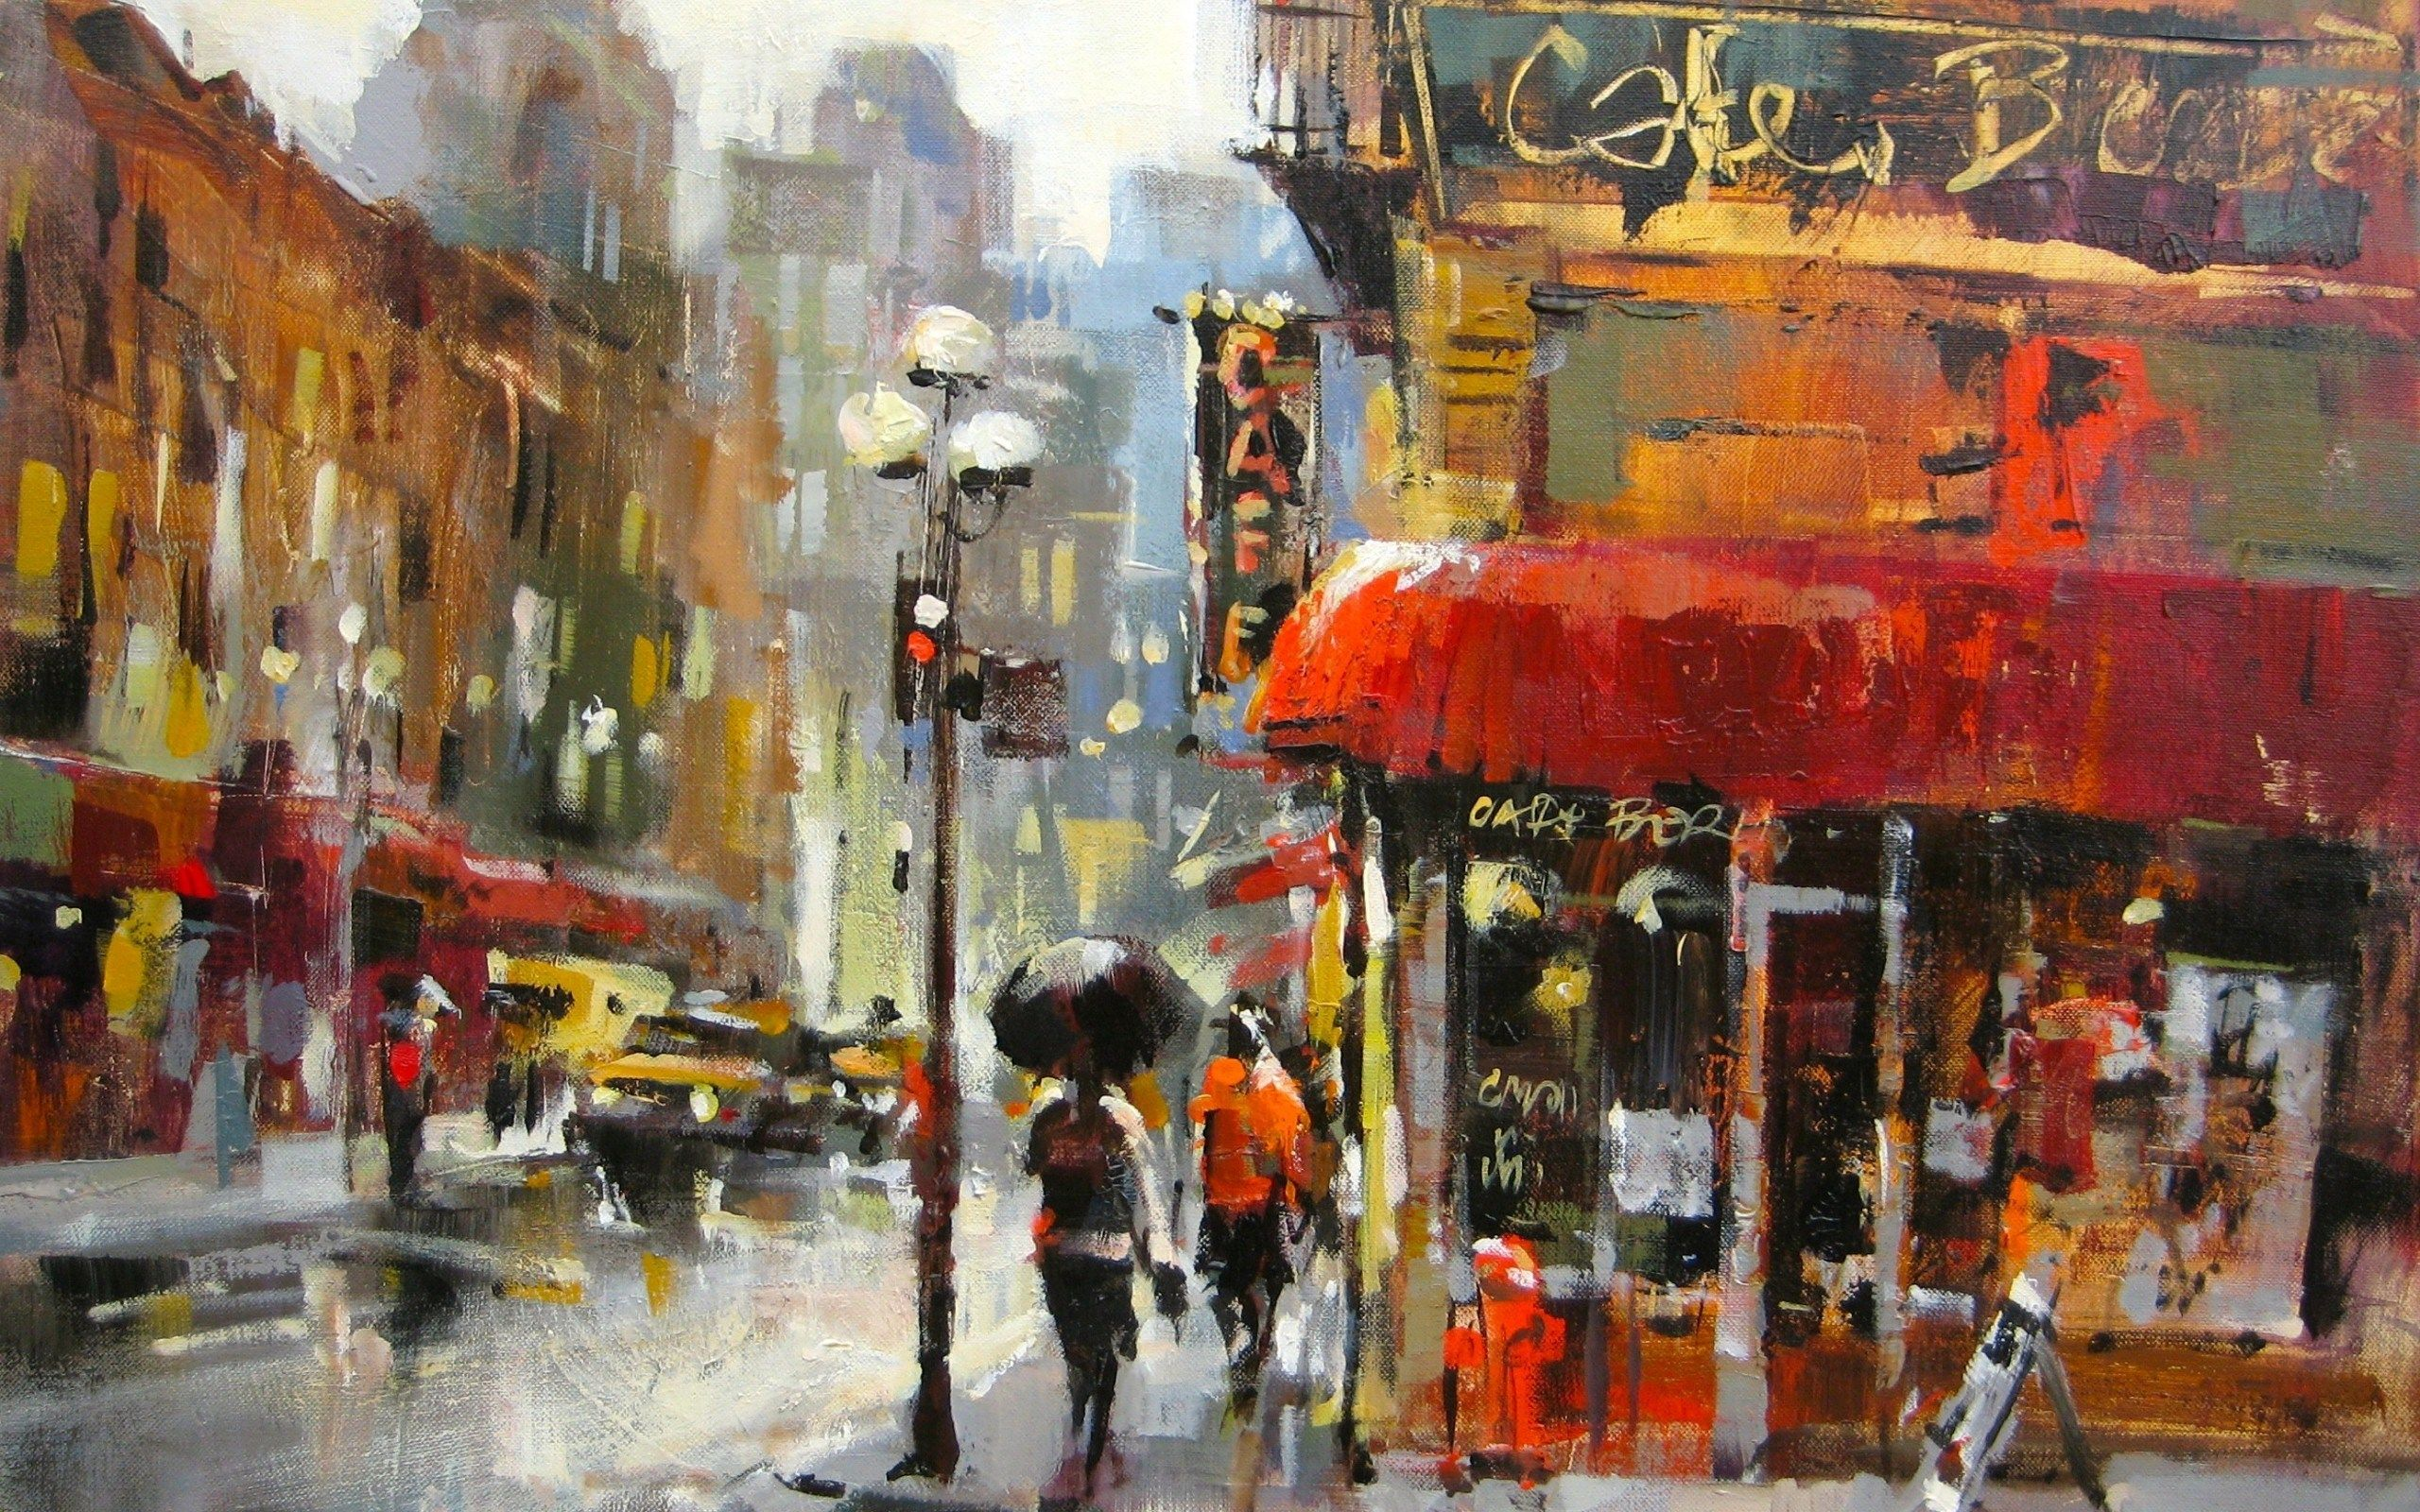 City Street Rainy Day Oil Painting Hd Wallpaper Rain Painting